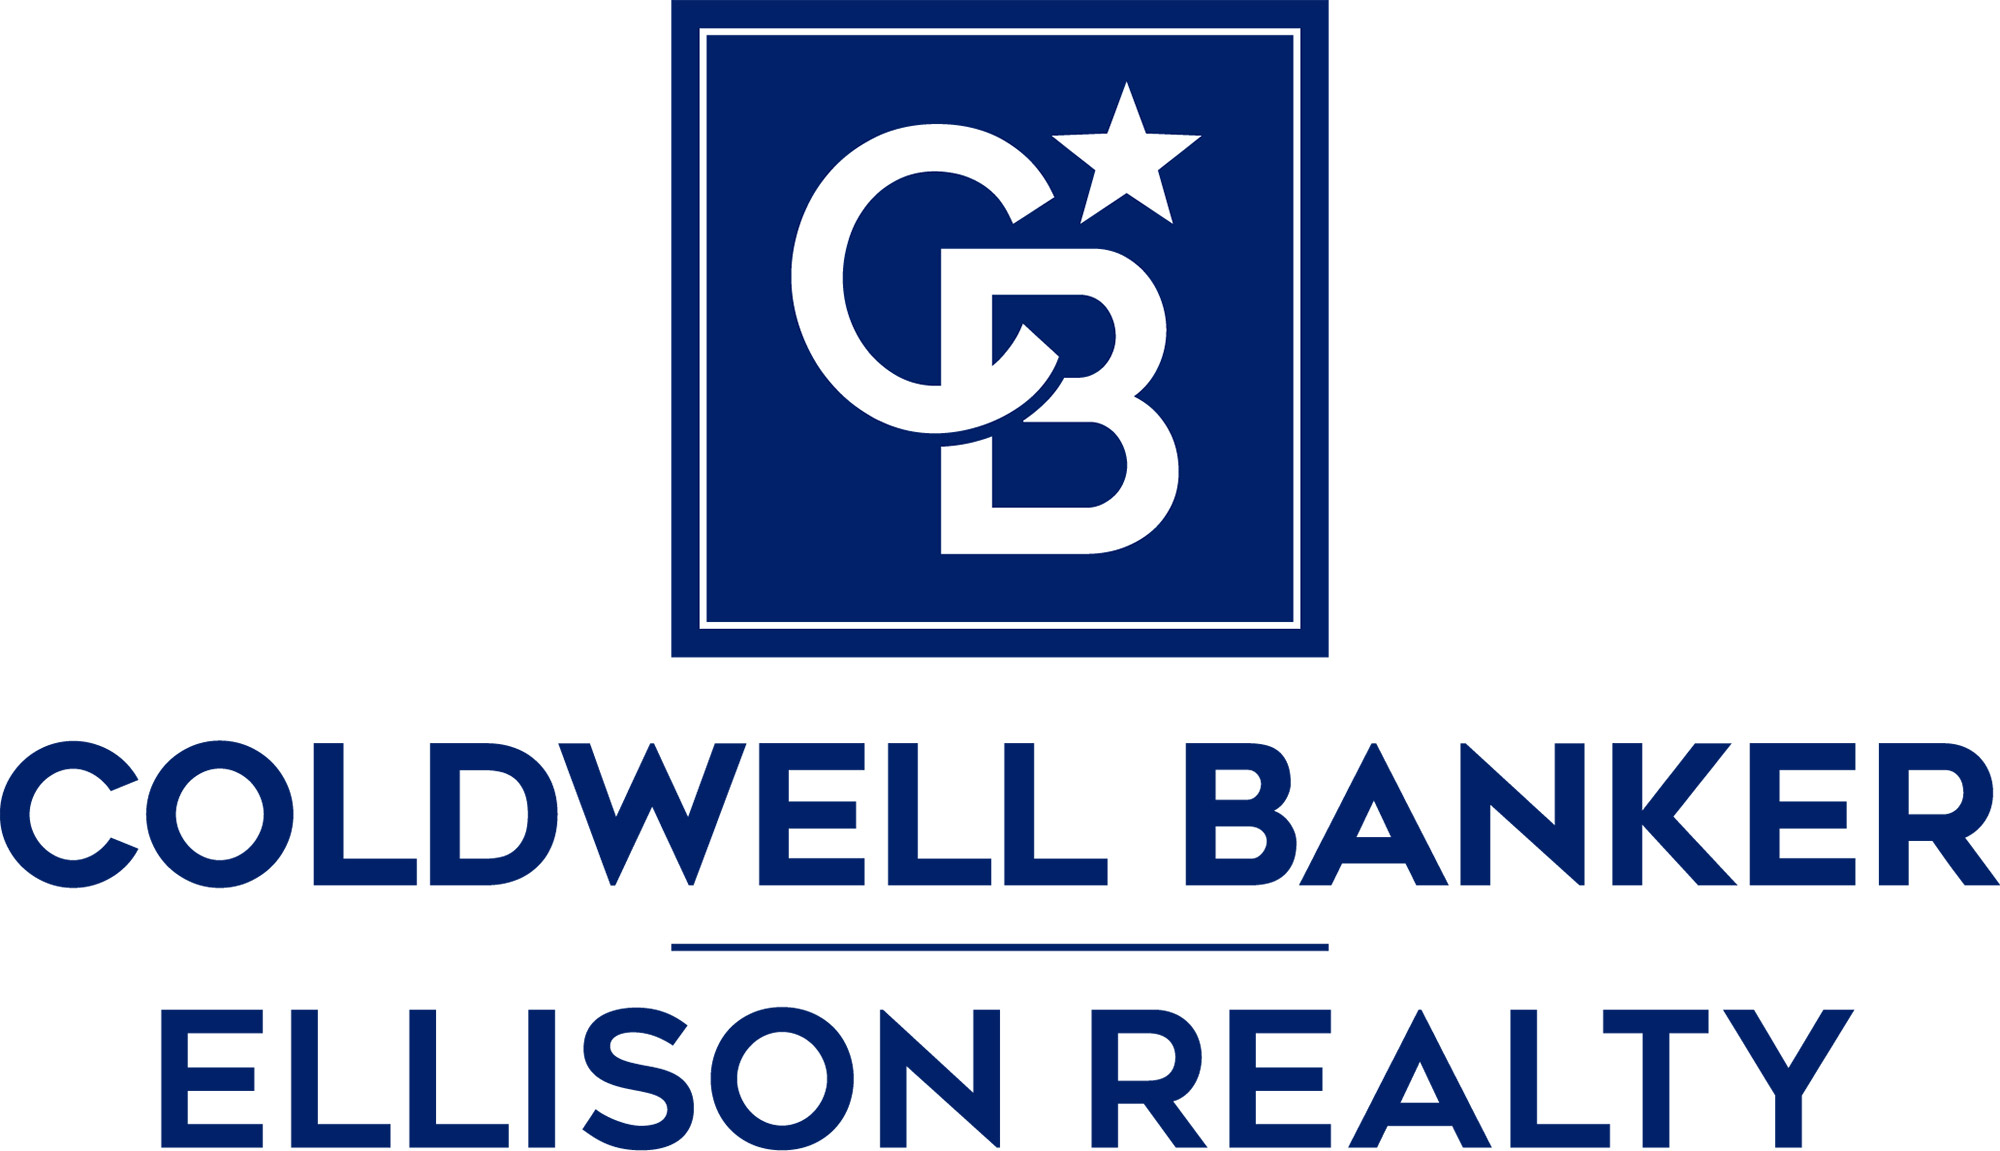 Jennie Fudge - Coldwell Banker Ellison Realty Logo